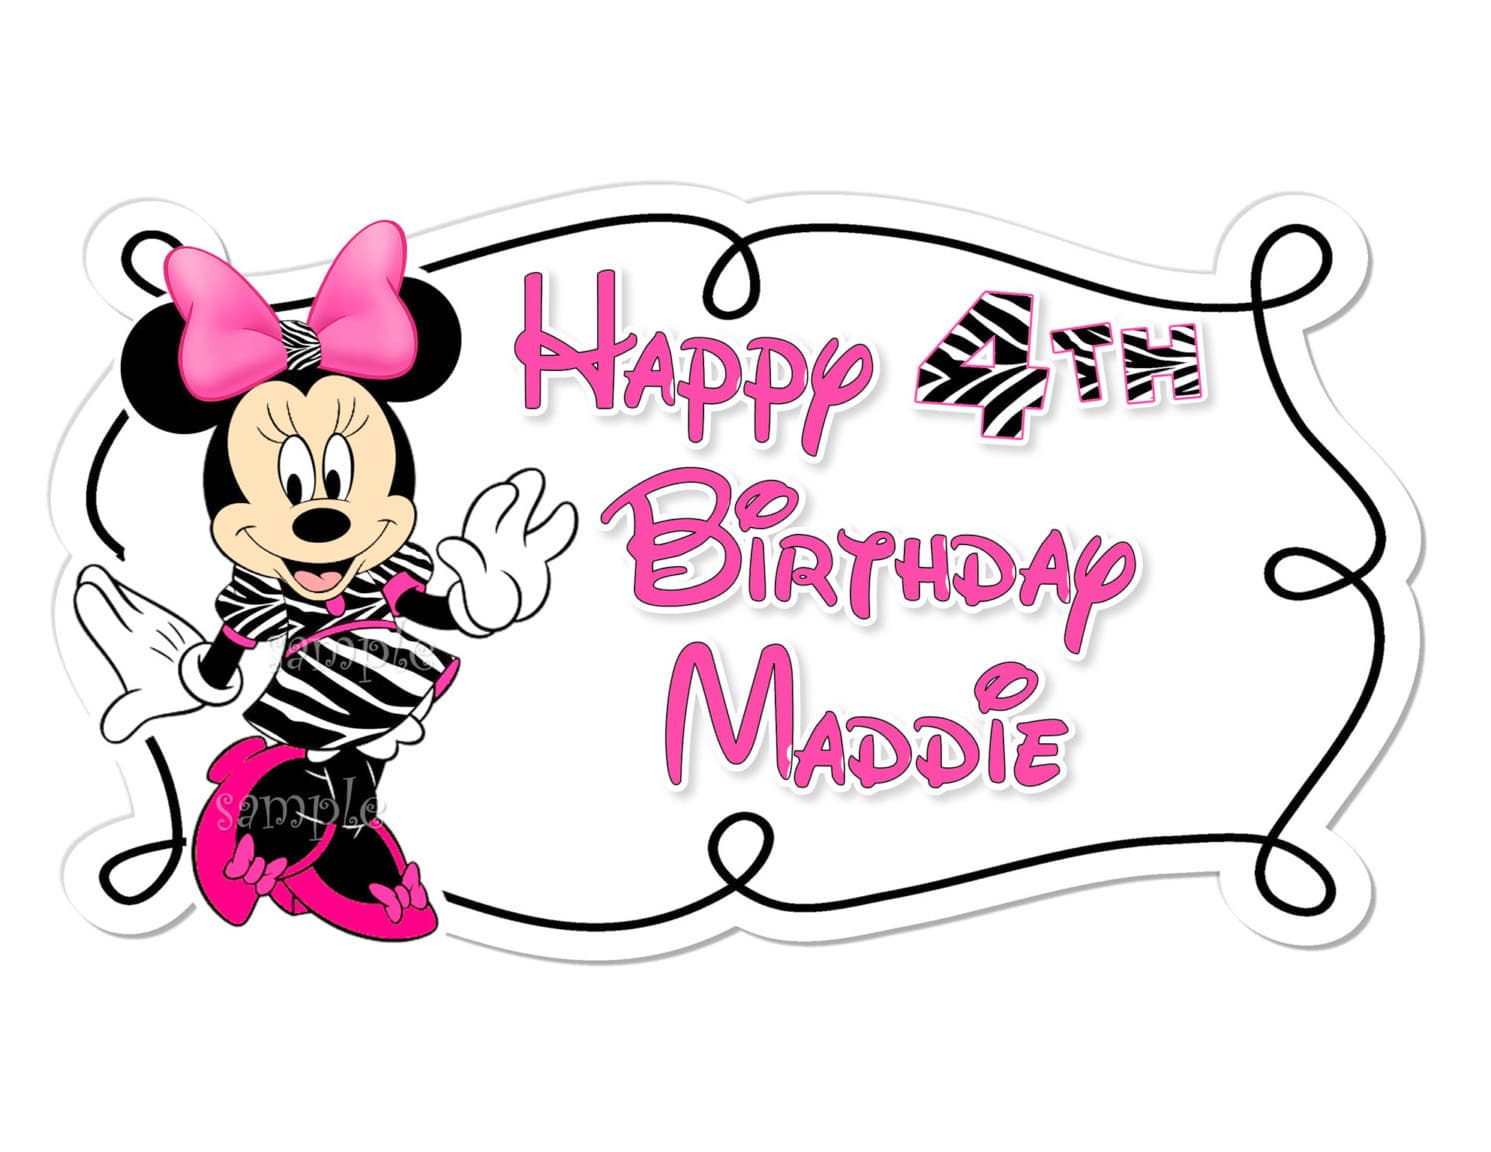 Pink Minnie Mouse Image